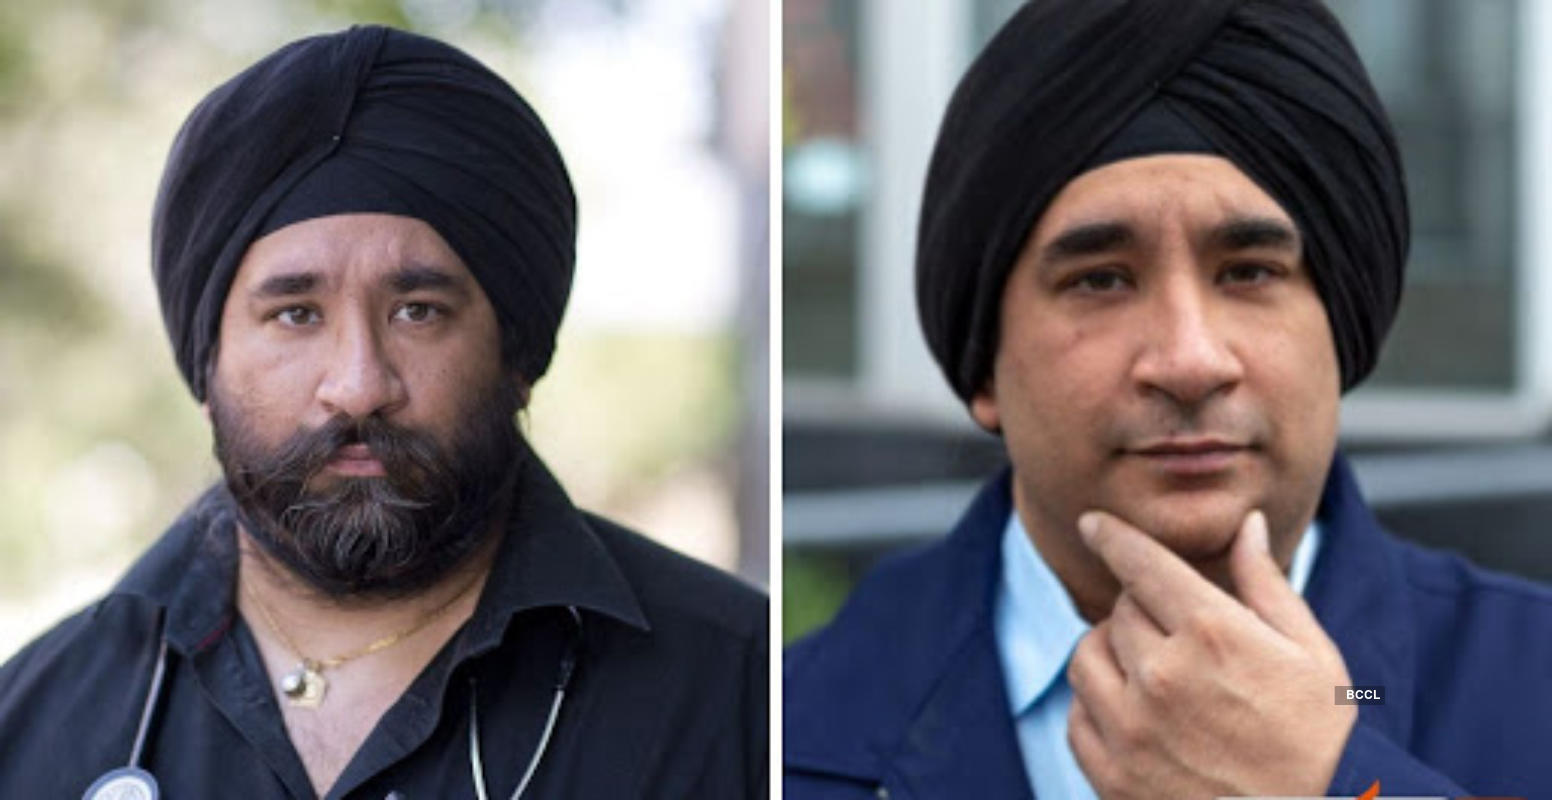 Sikh doctors take a moving decision as they shaved their beard to treat Covid-19 patients better